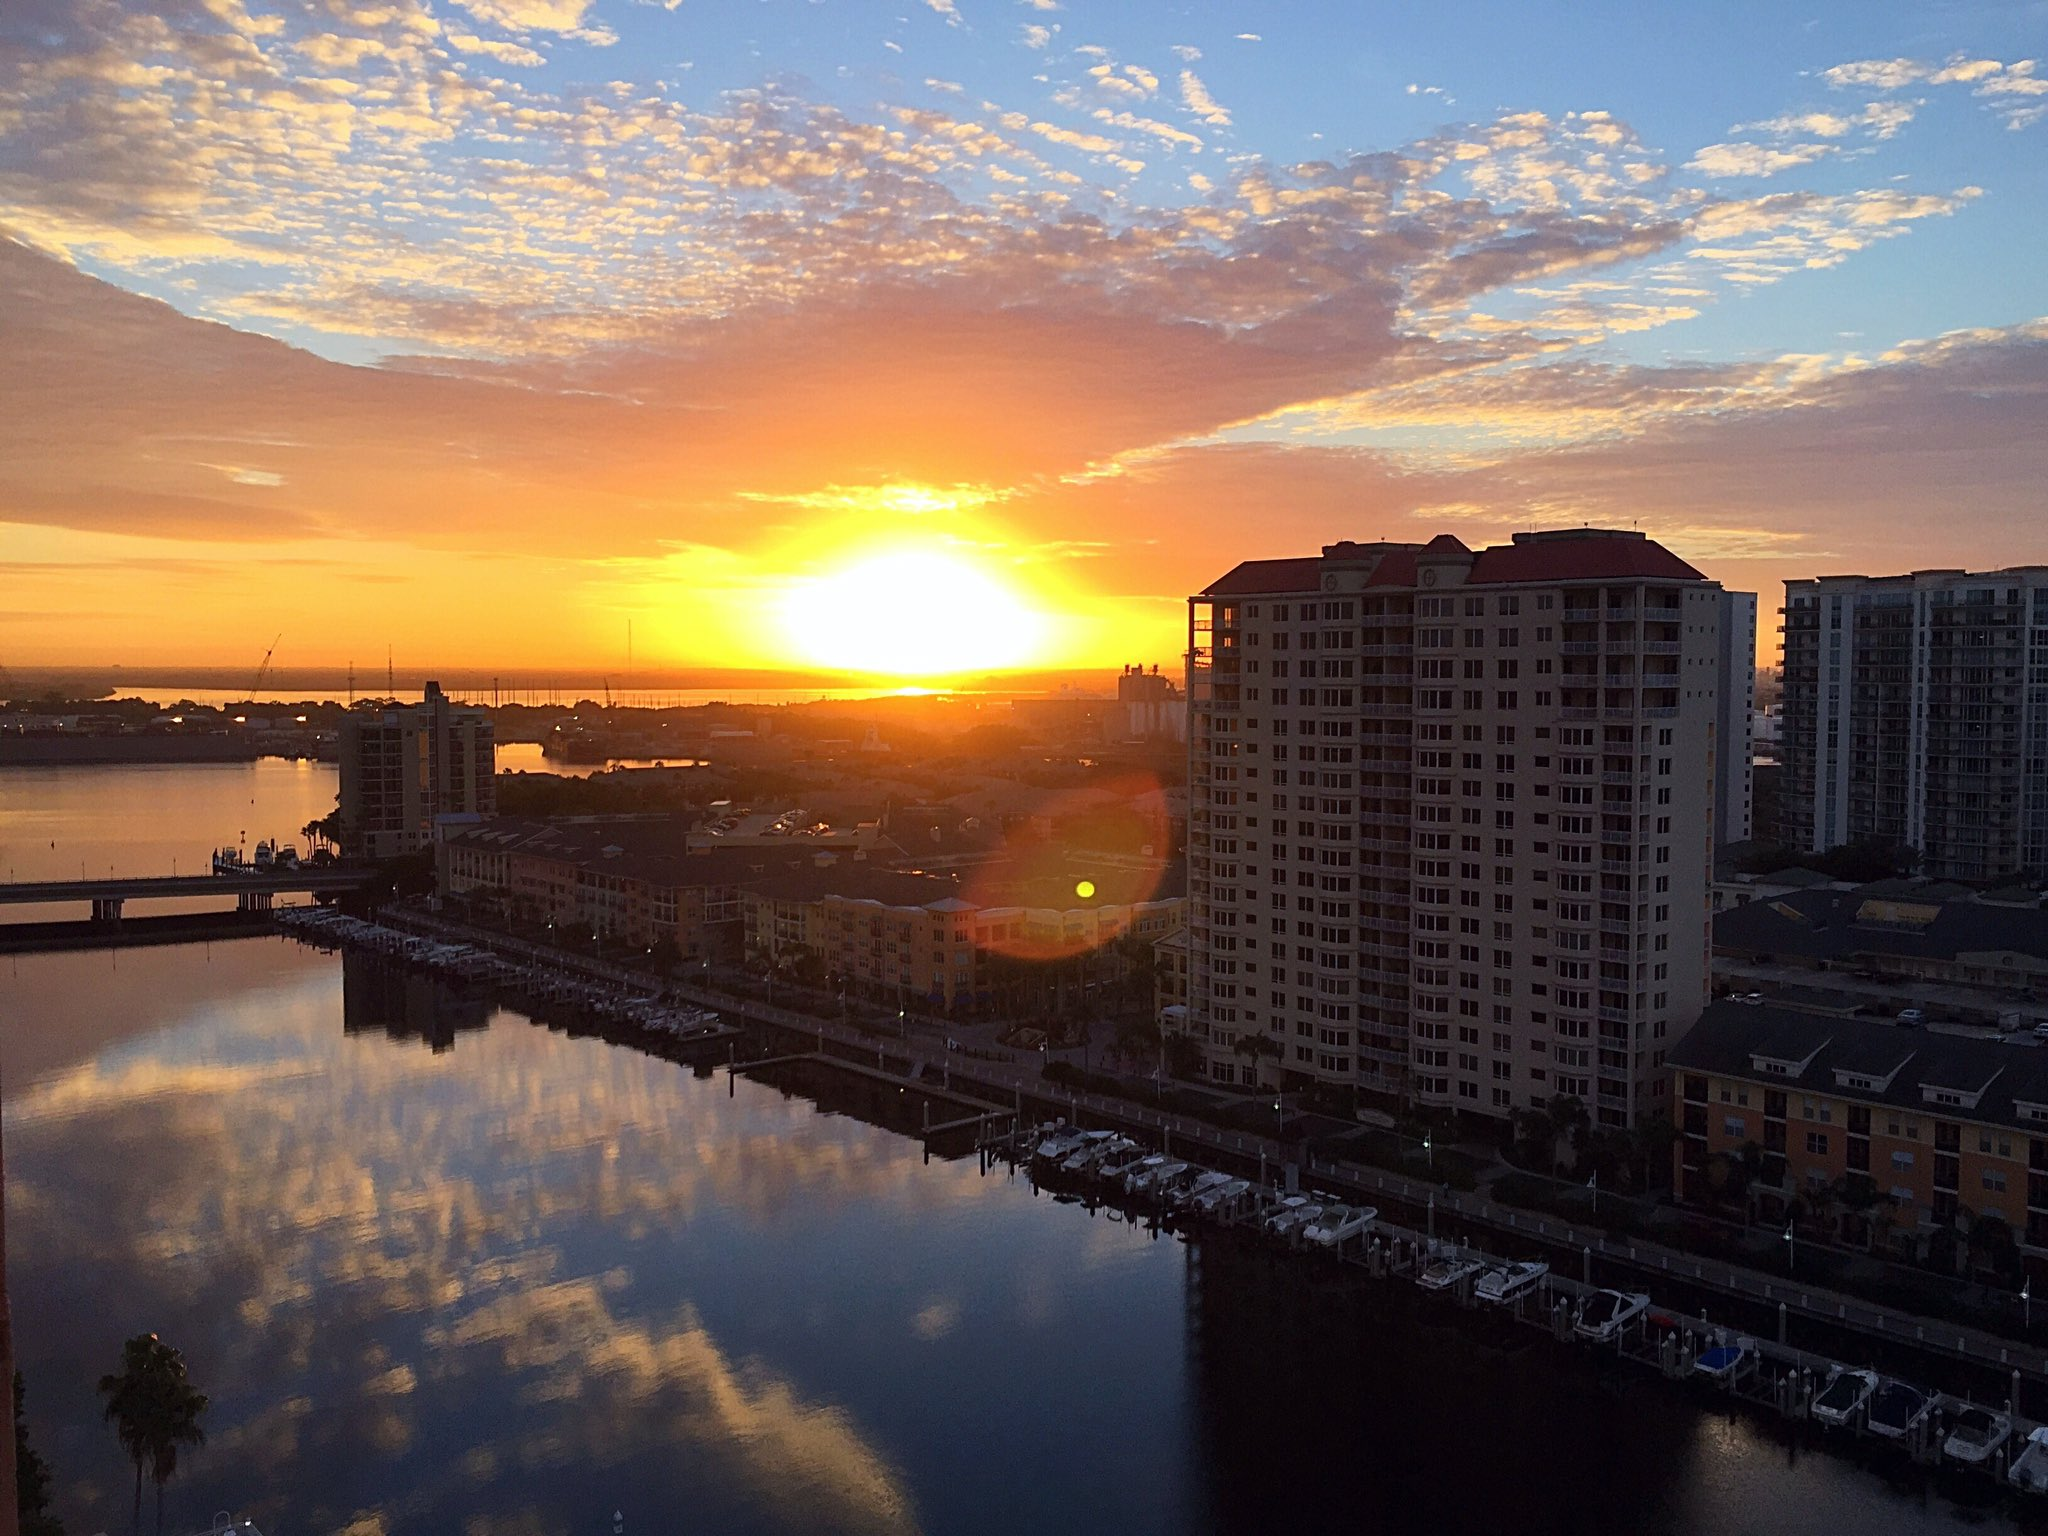 We are off to a beautiful start in Tampa! #ABRCMS https://t.co/VuxO57rtt7